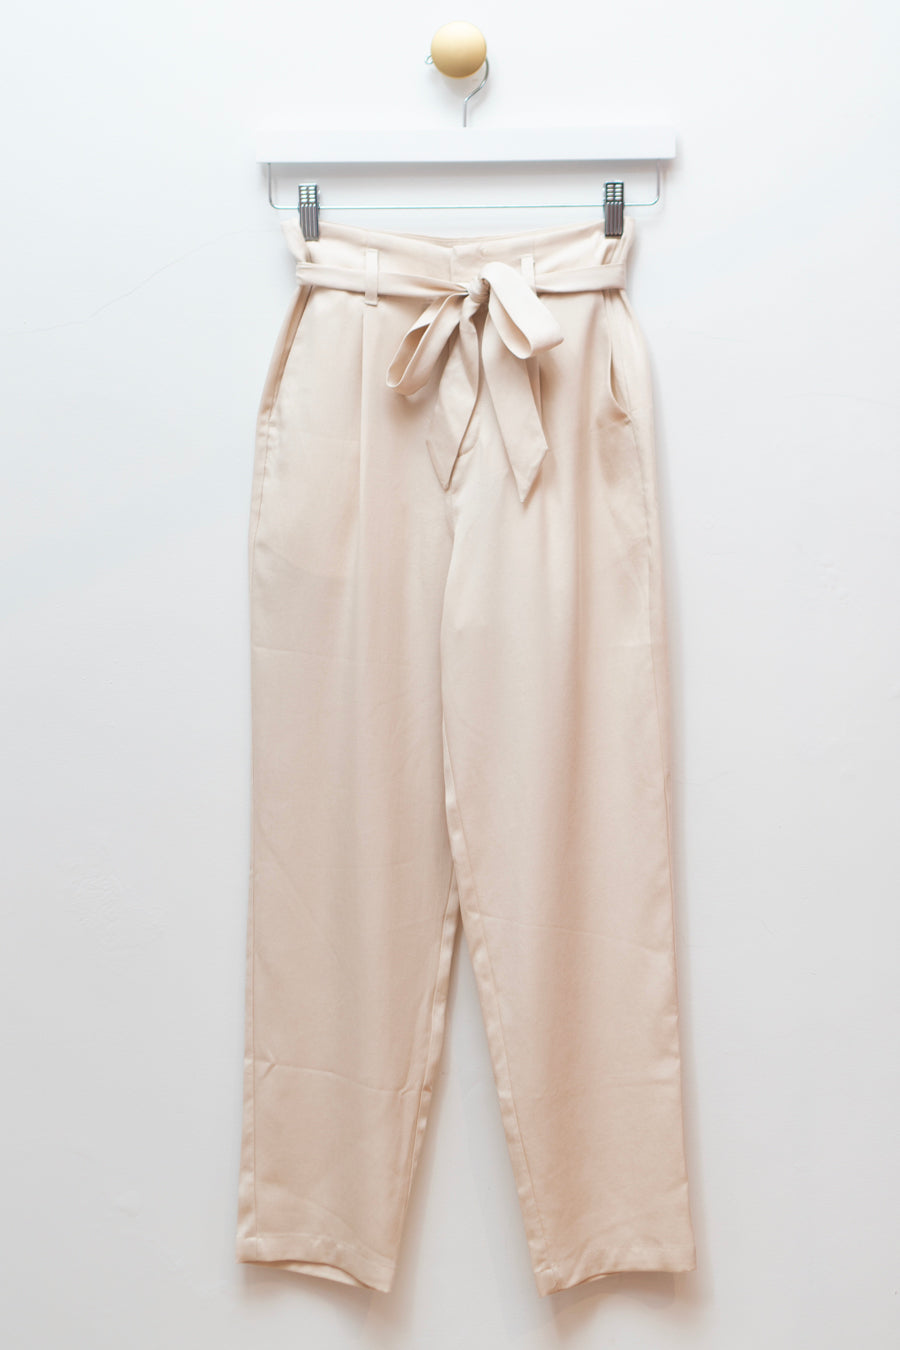 Hollandale High Waisted Trouser